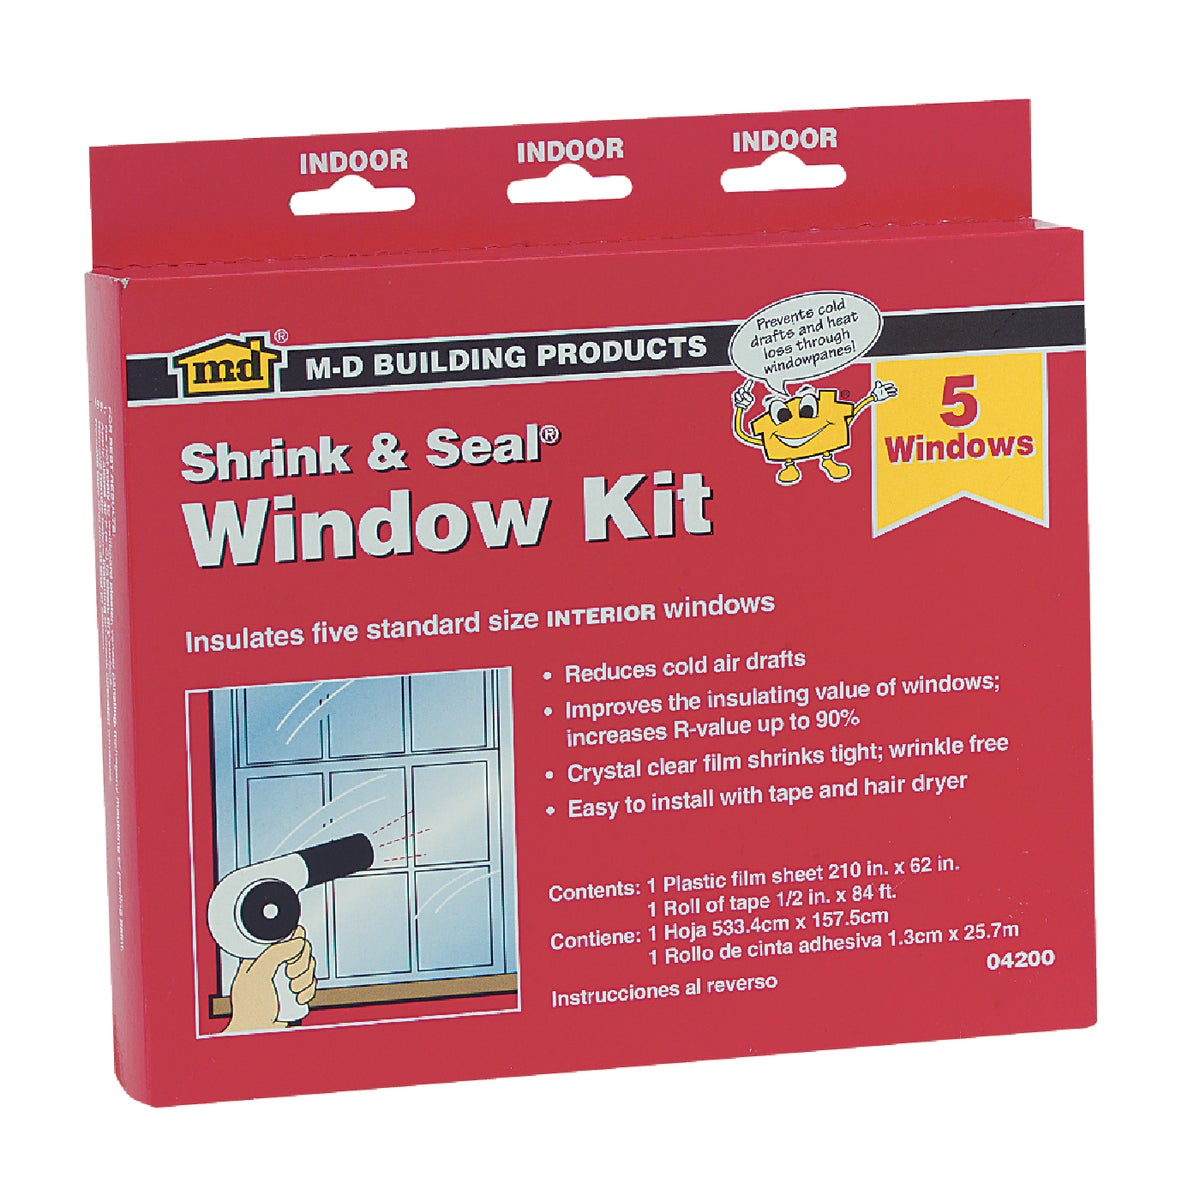 M-D Building Products SHRINK&SEAL 5-WINDOW KIT 4200